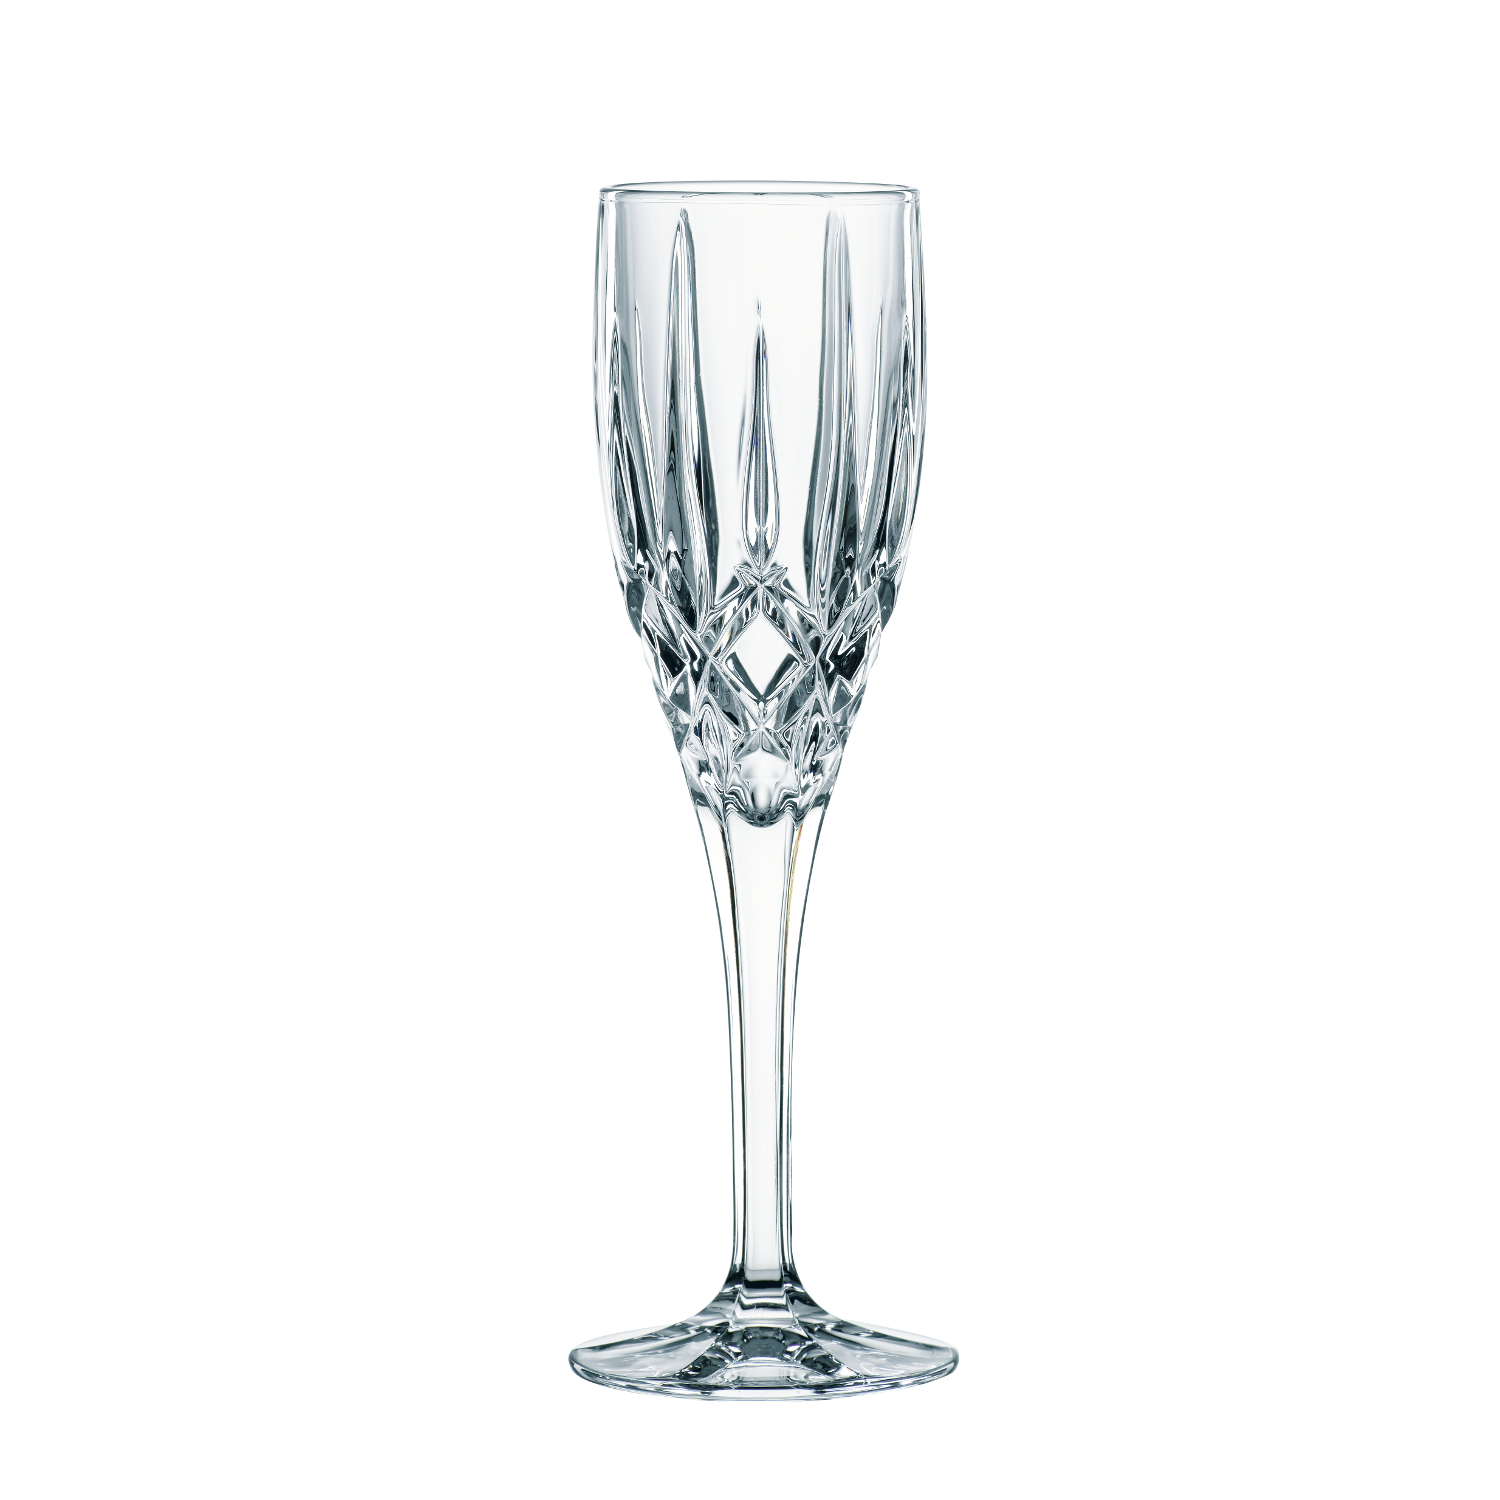 Nachtmann Noblesse Crystal 5.6 Ounce Toasting Flute, Set of 2